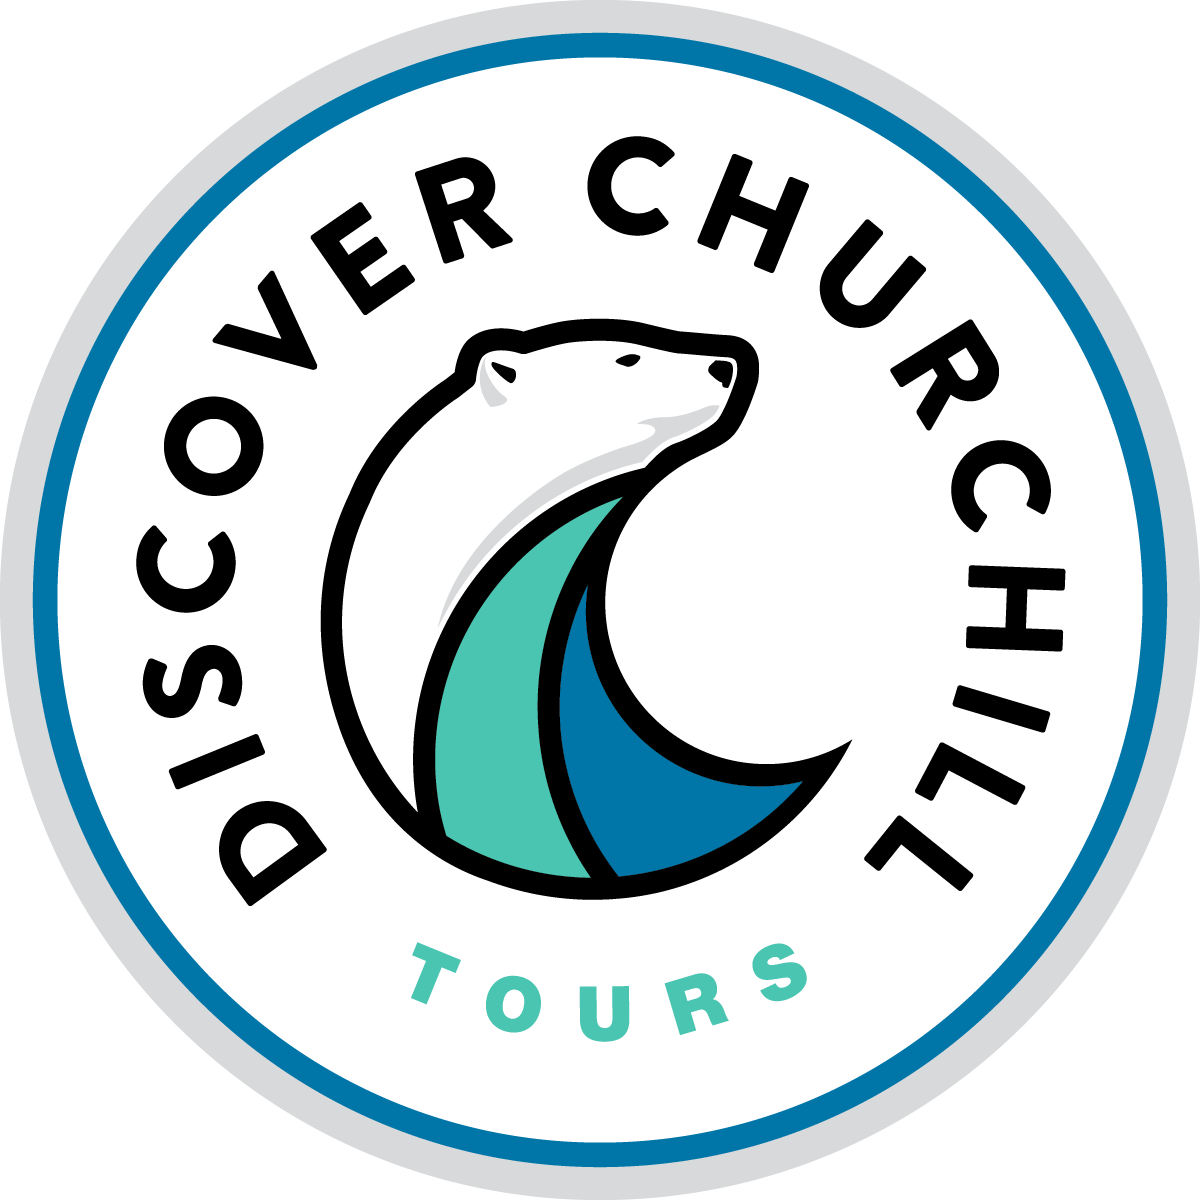 Discover Churchill Tours